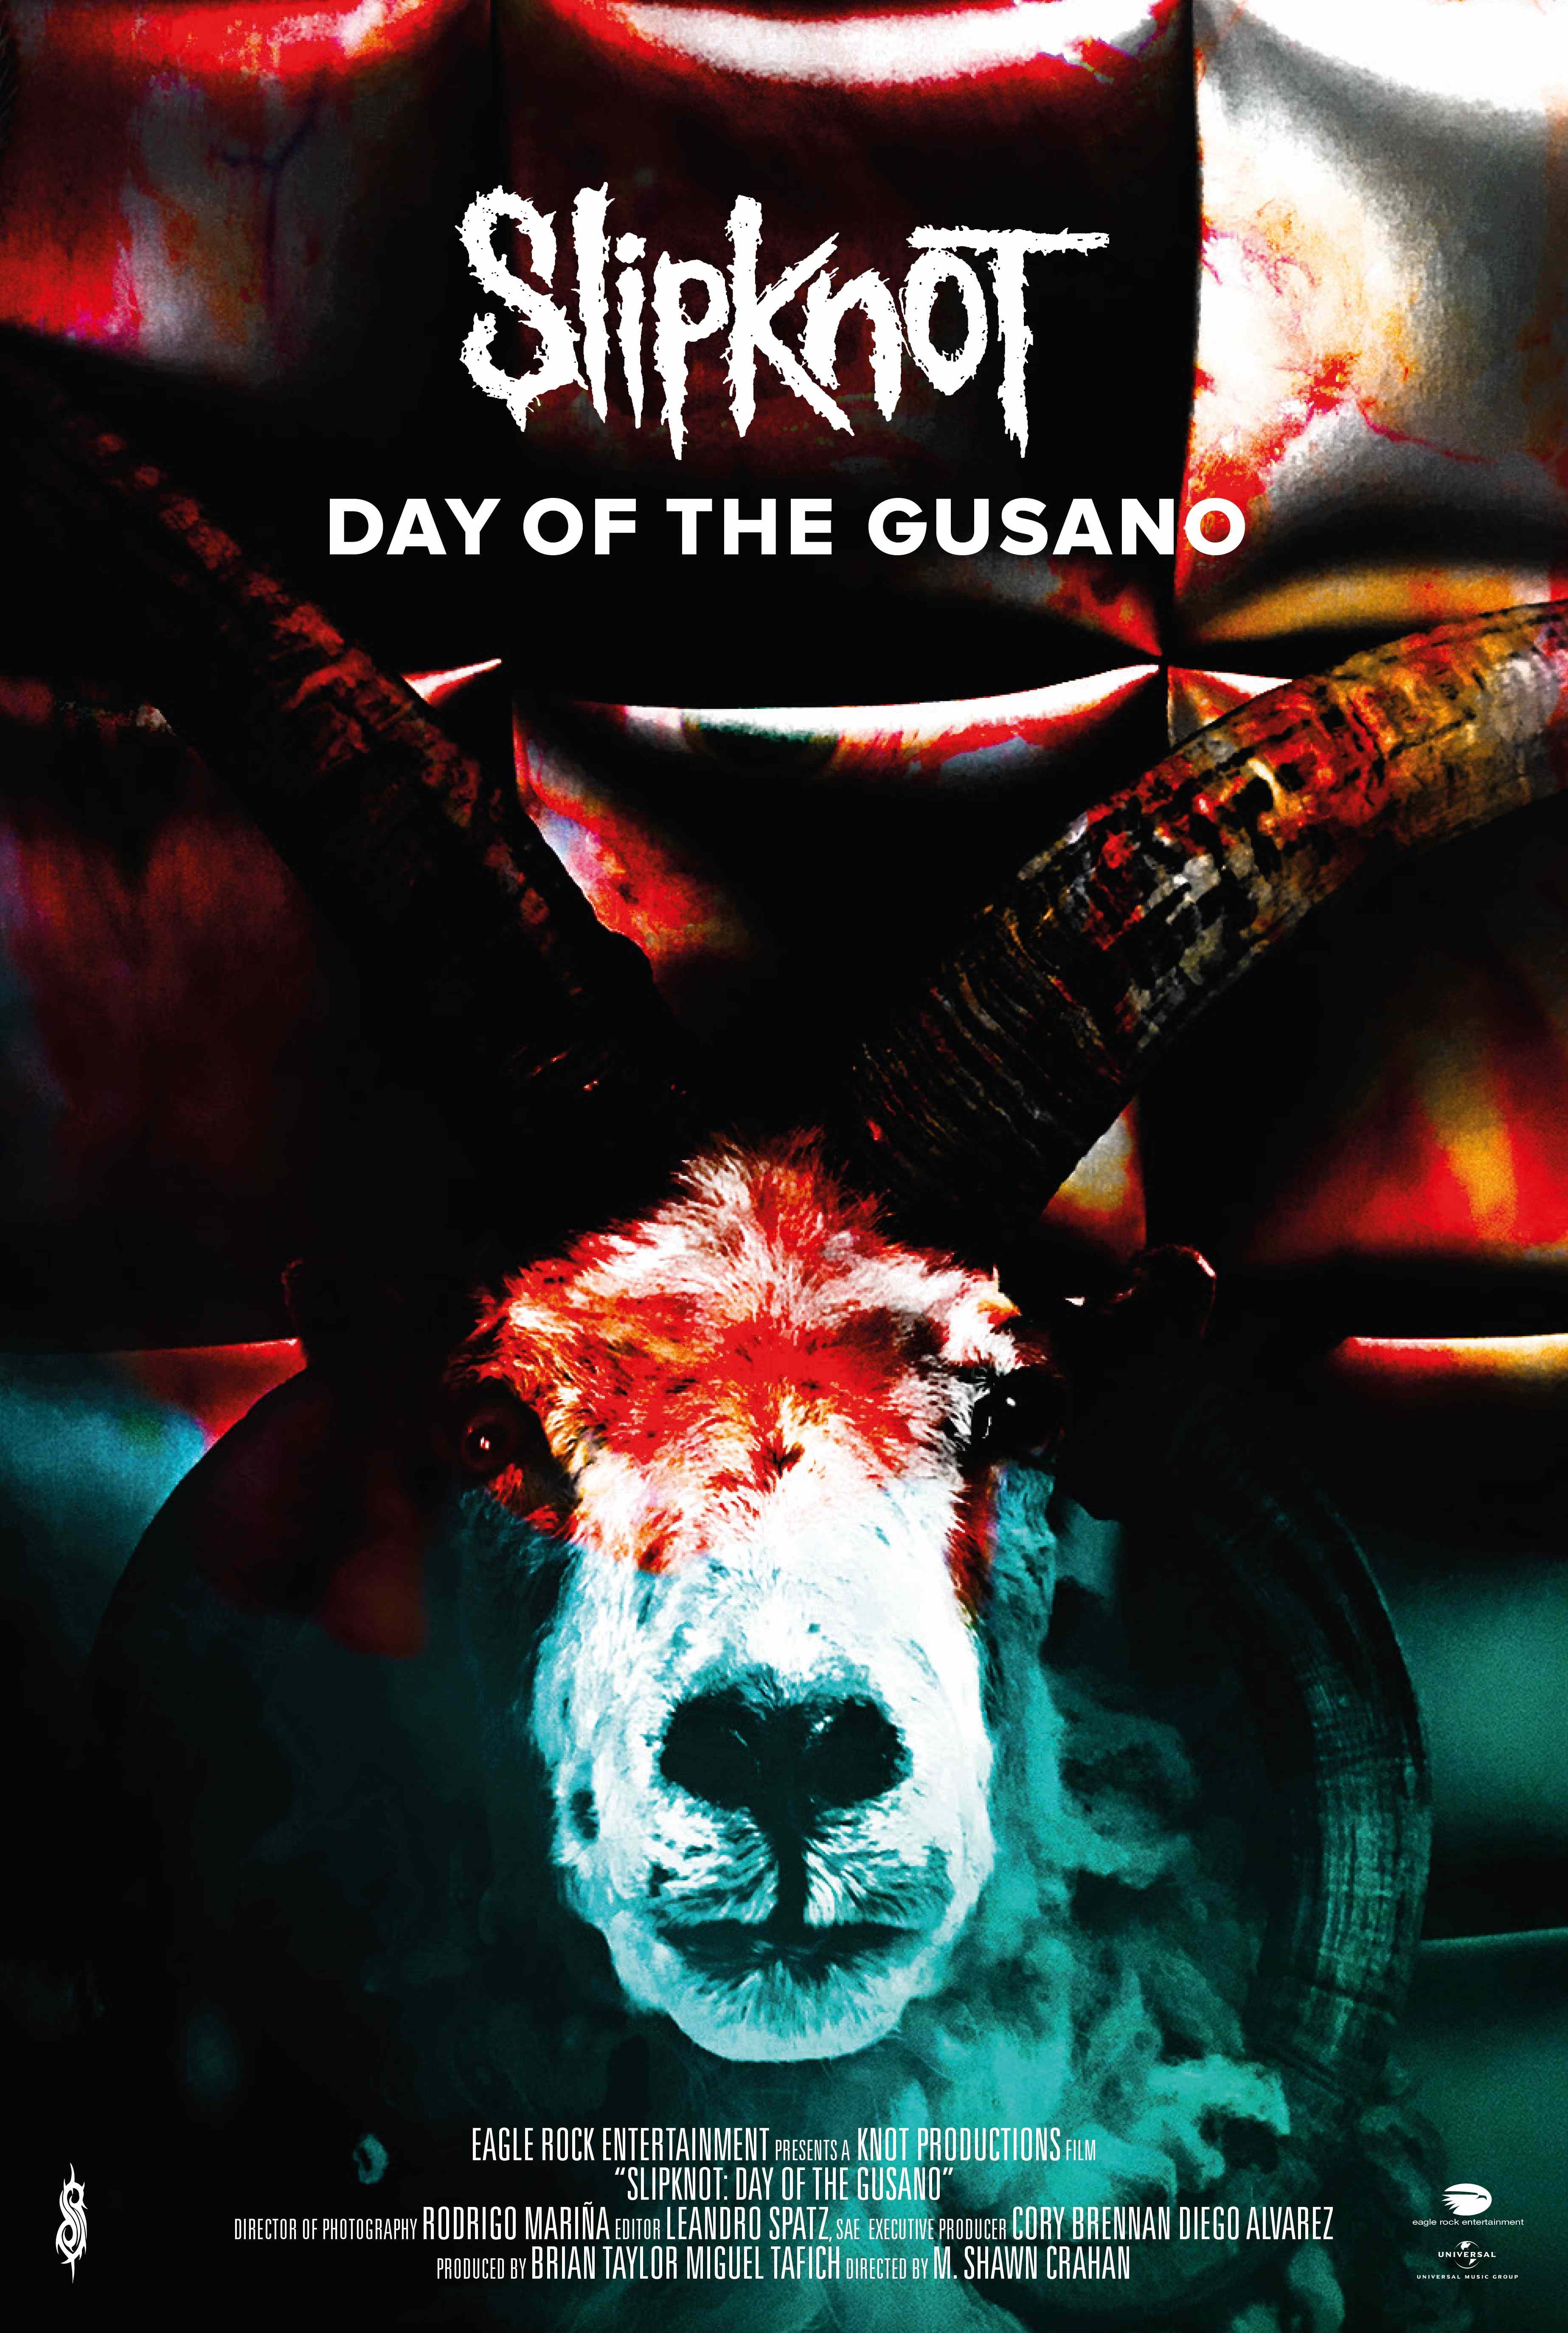 SLIPKNOT announce 'Day Of The Gusano' documentary cinema release